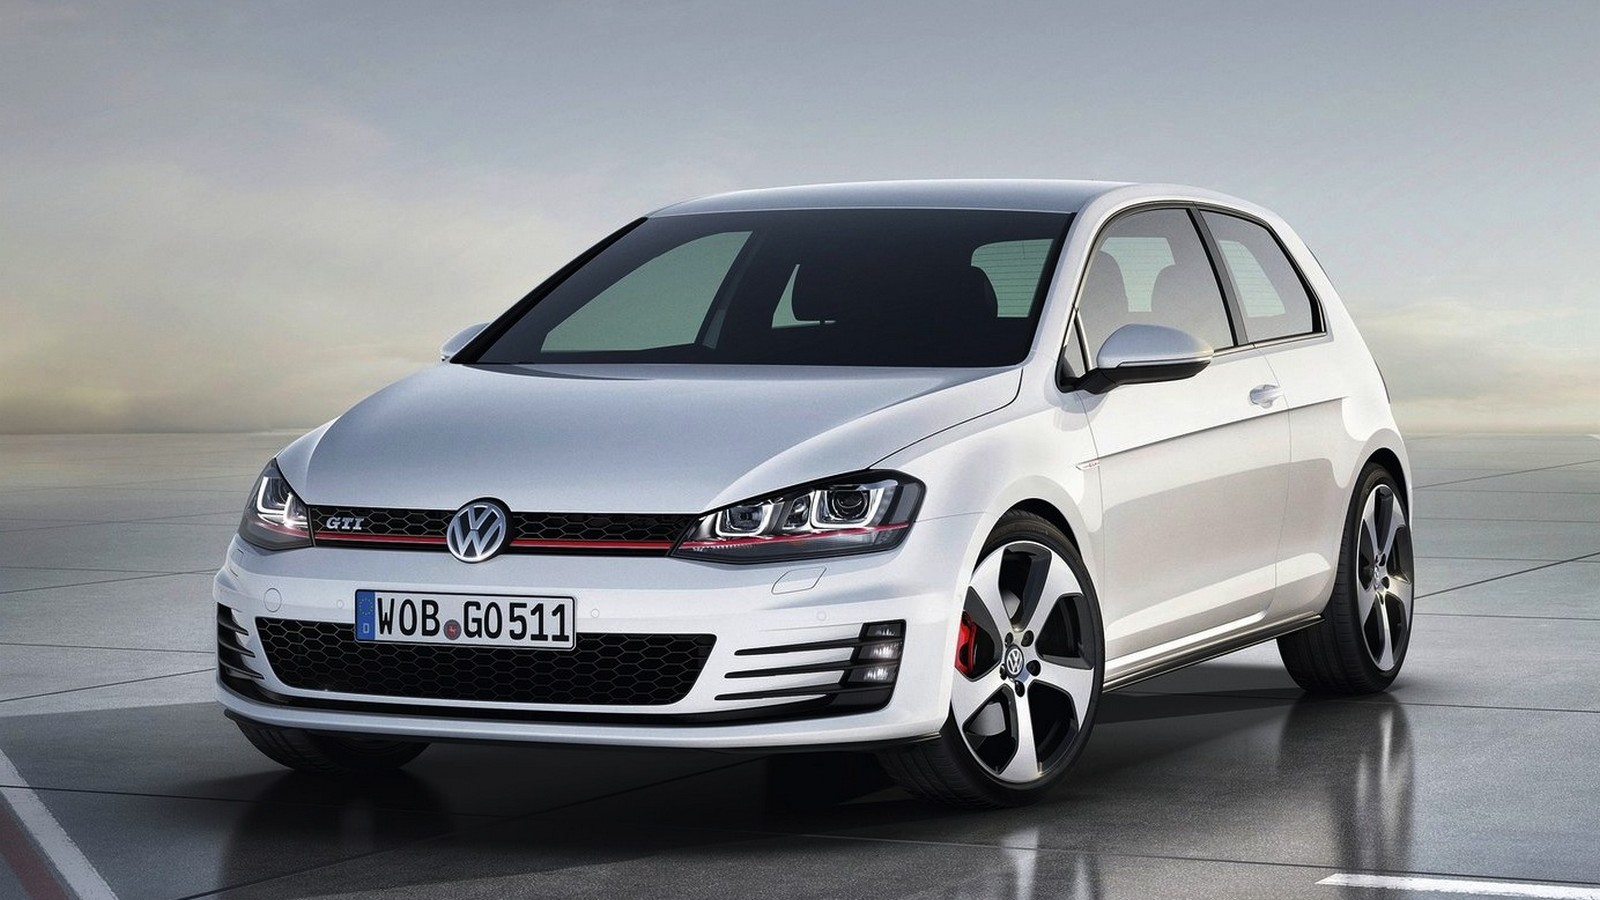 2019 Volkswagen Golf III GTI photo - 1